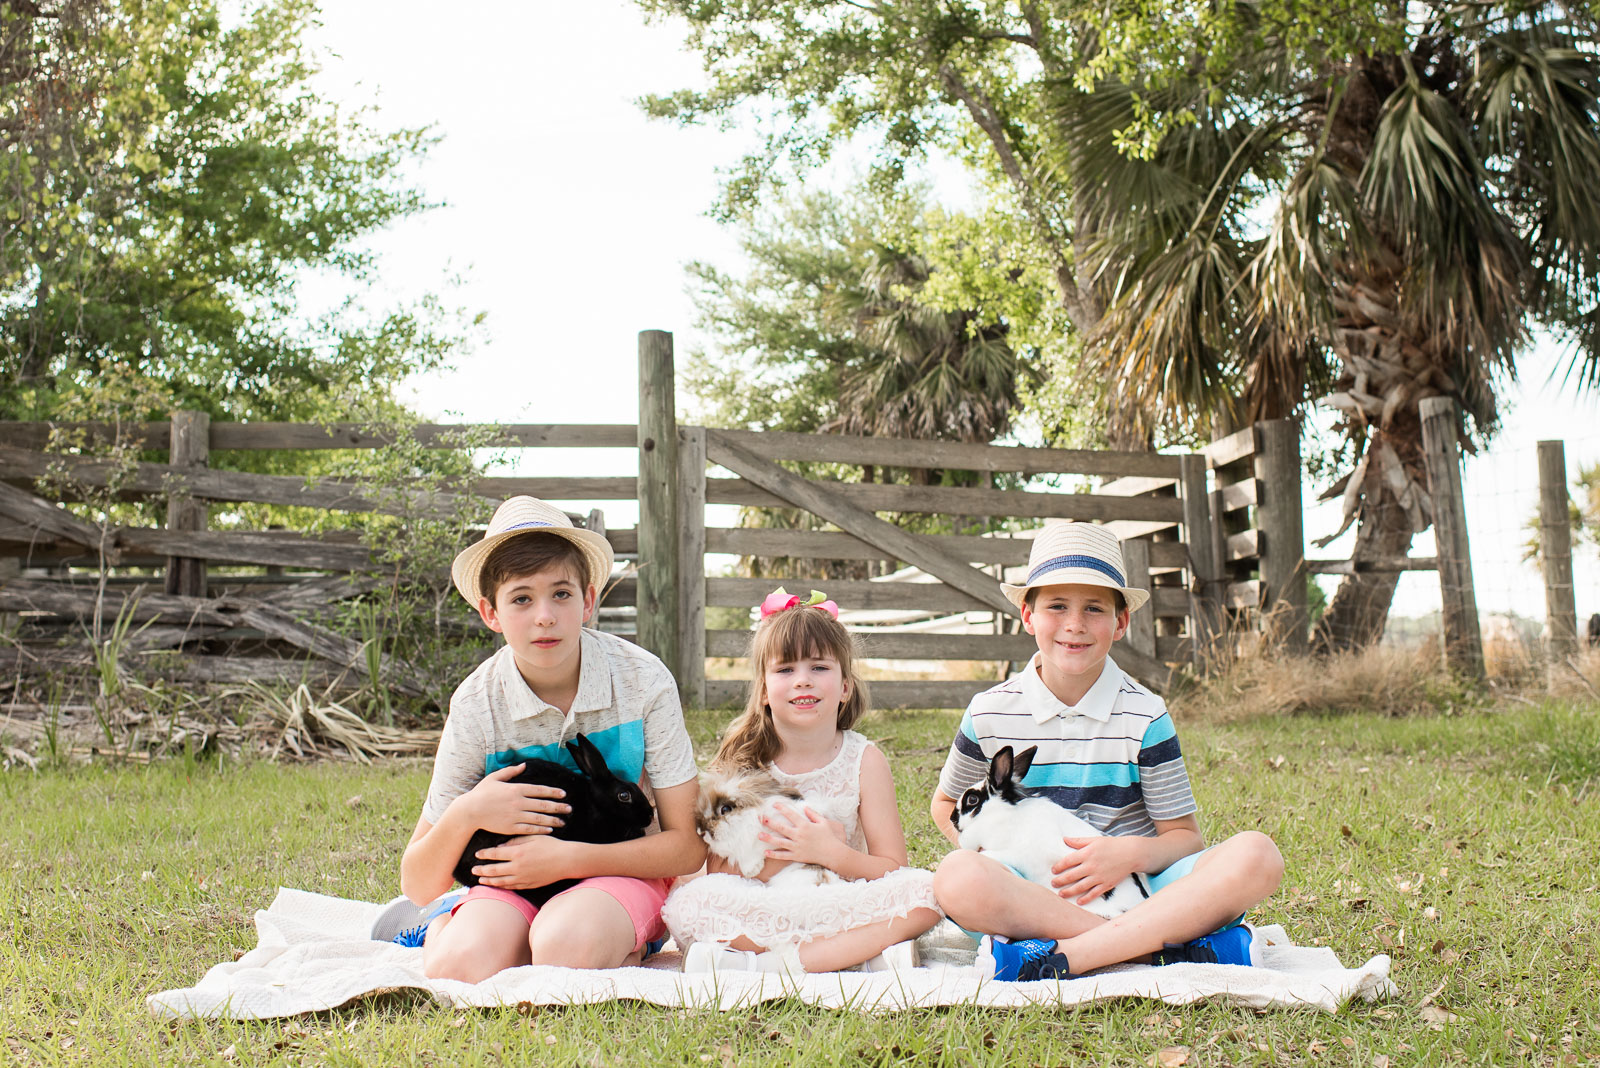 easter-photo-sessions-children-animals-02-5.jpg